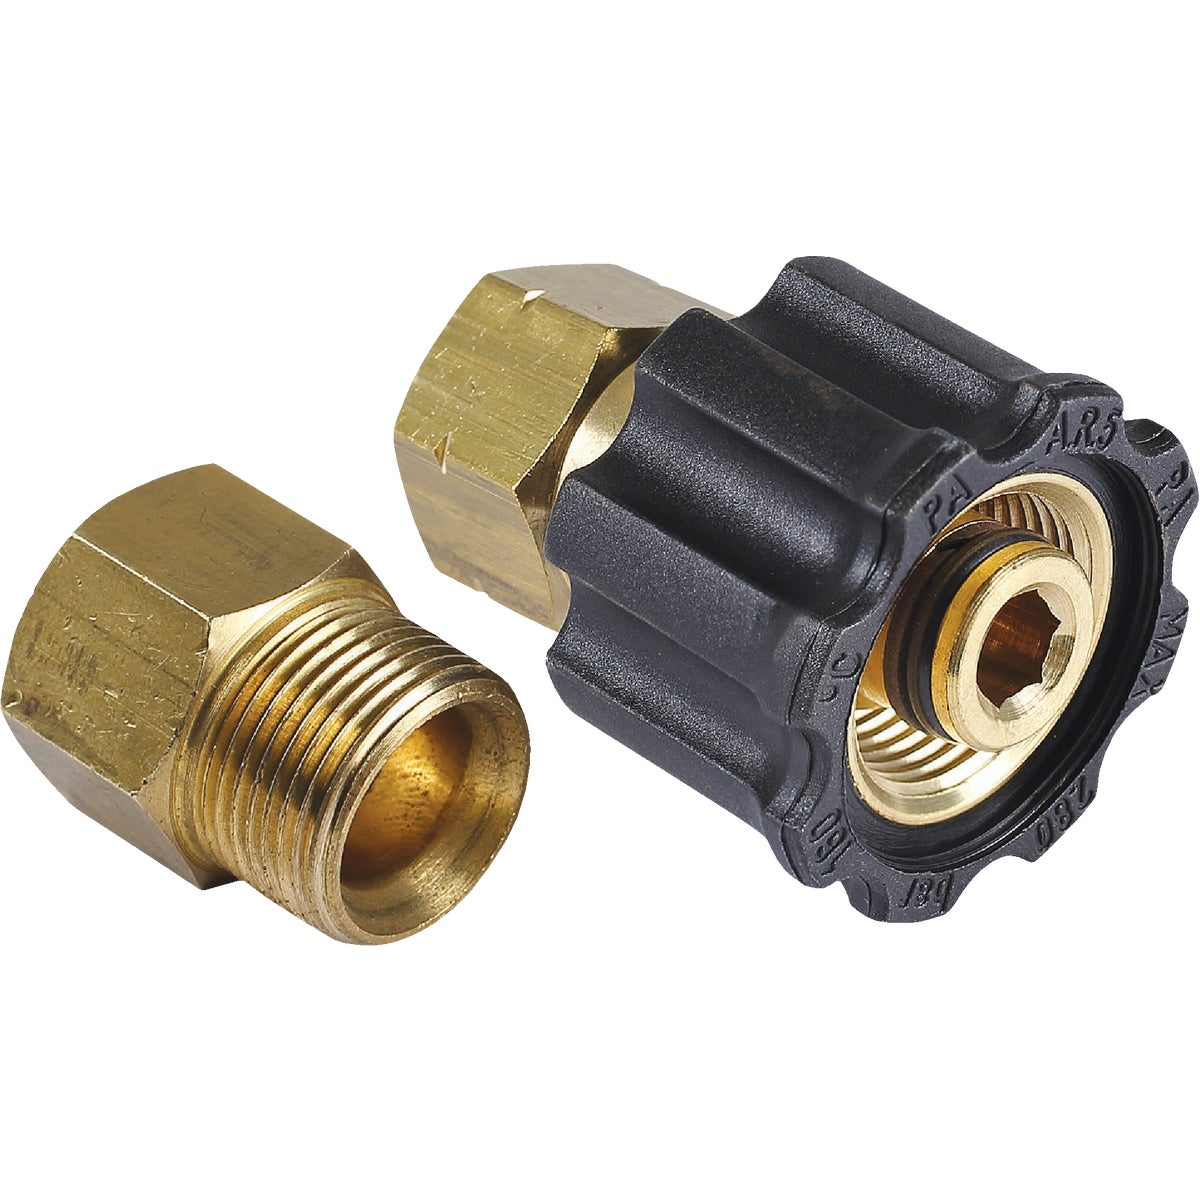 "M22X14MMX3/8"" CONNECTION - AW-0017-0035 by Mi T M Corp"